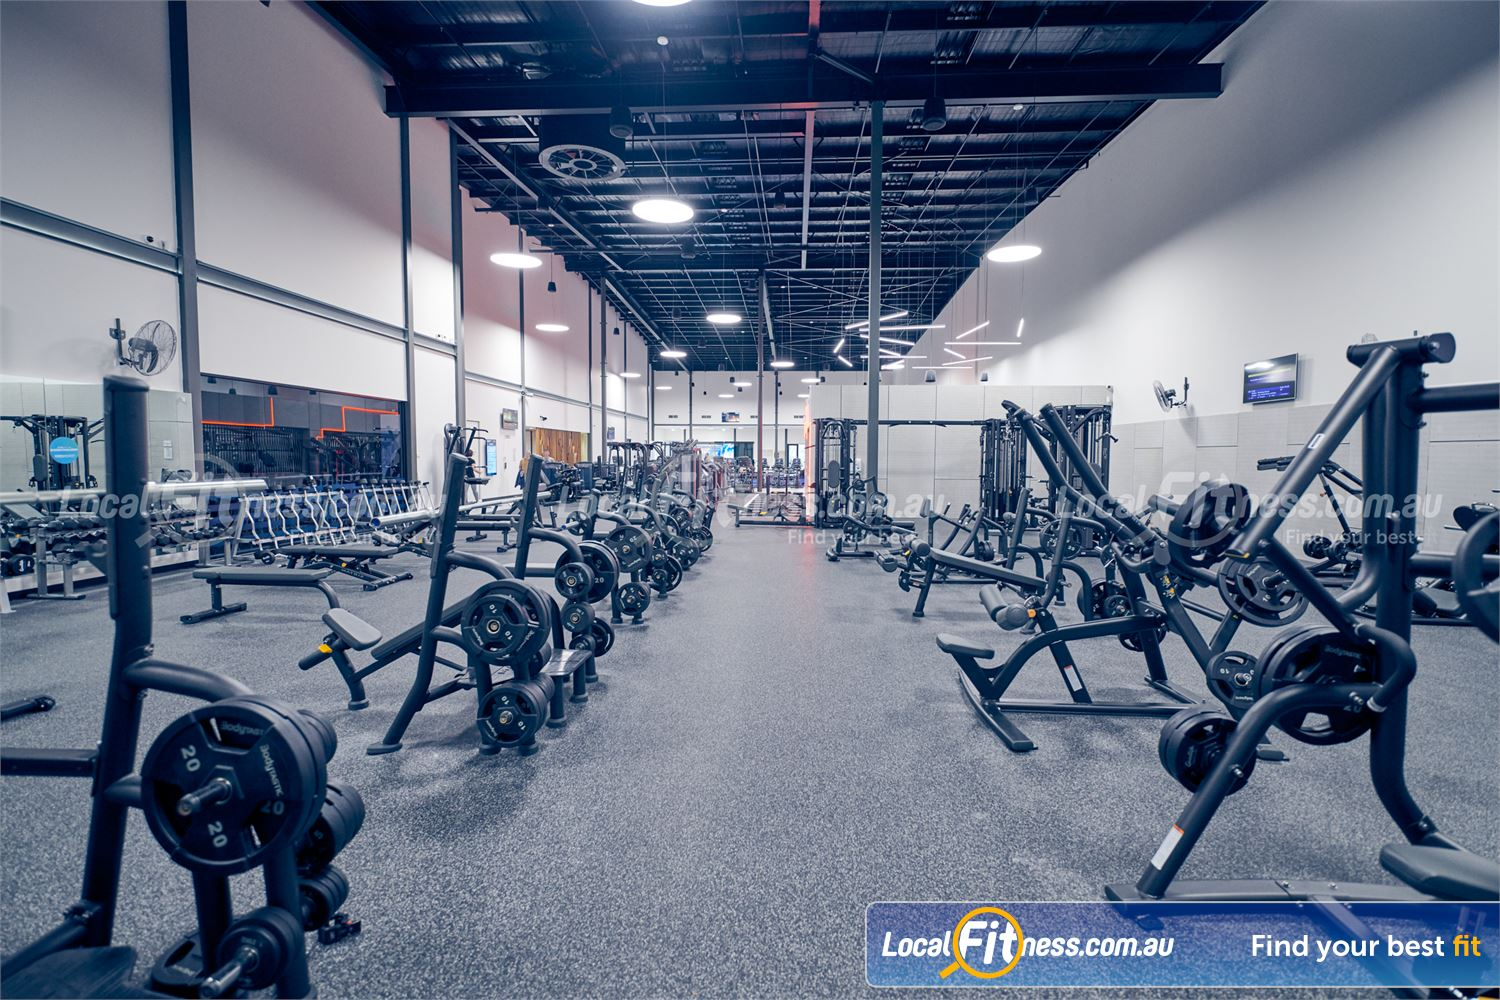 Goodlife Health Clubs Ringwood Heavy-duty plate-loading machines are coming to Goodlife Ringwood gym.